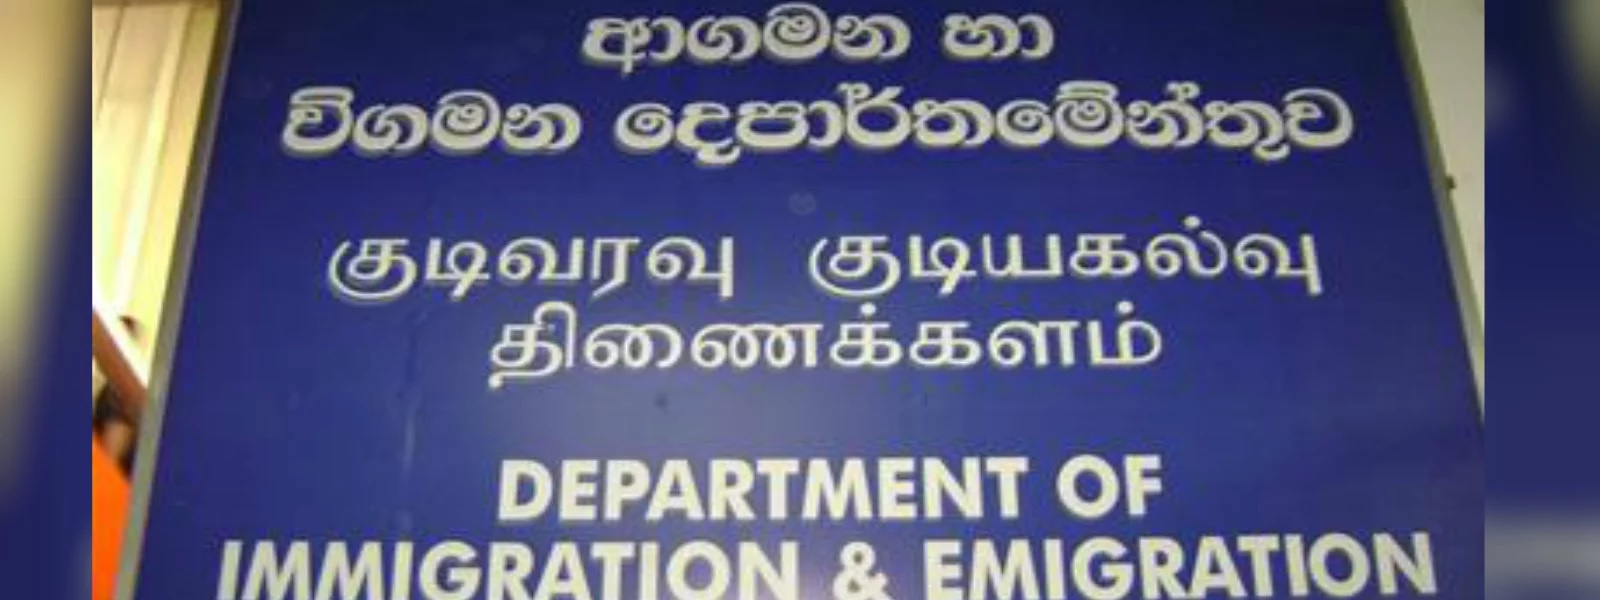 48 without visas deported from Sri Lanka: Overstayed their welcome